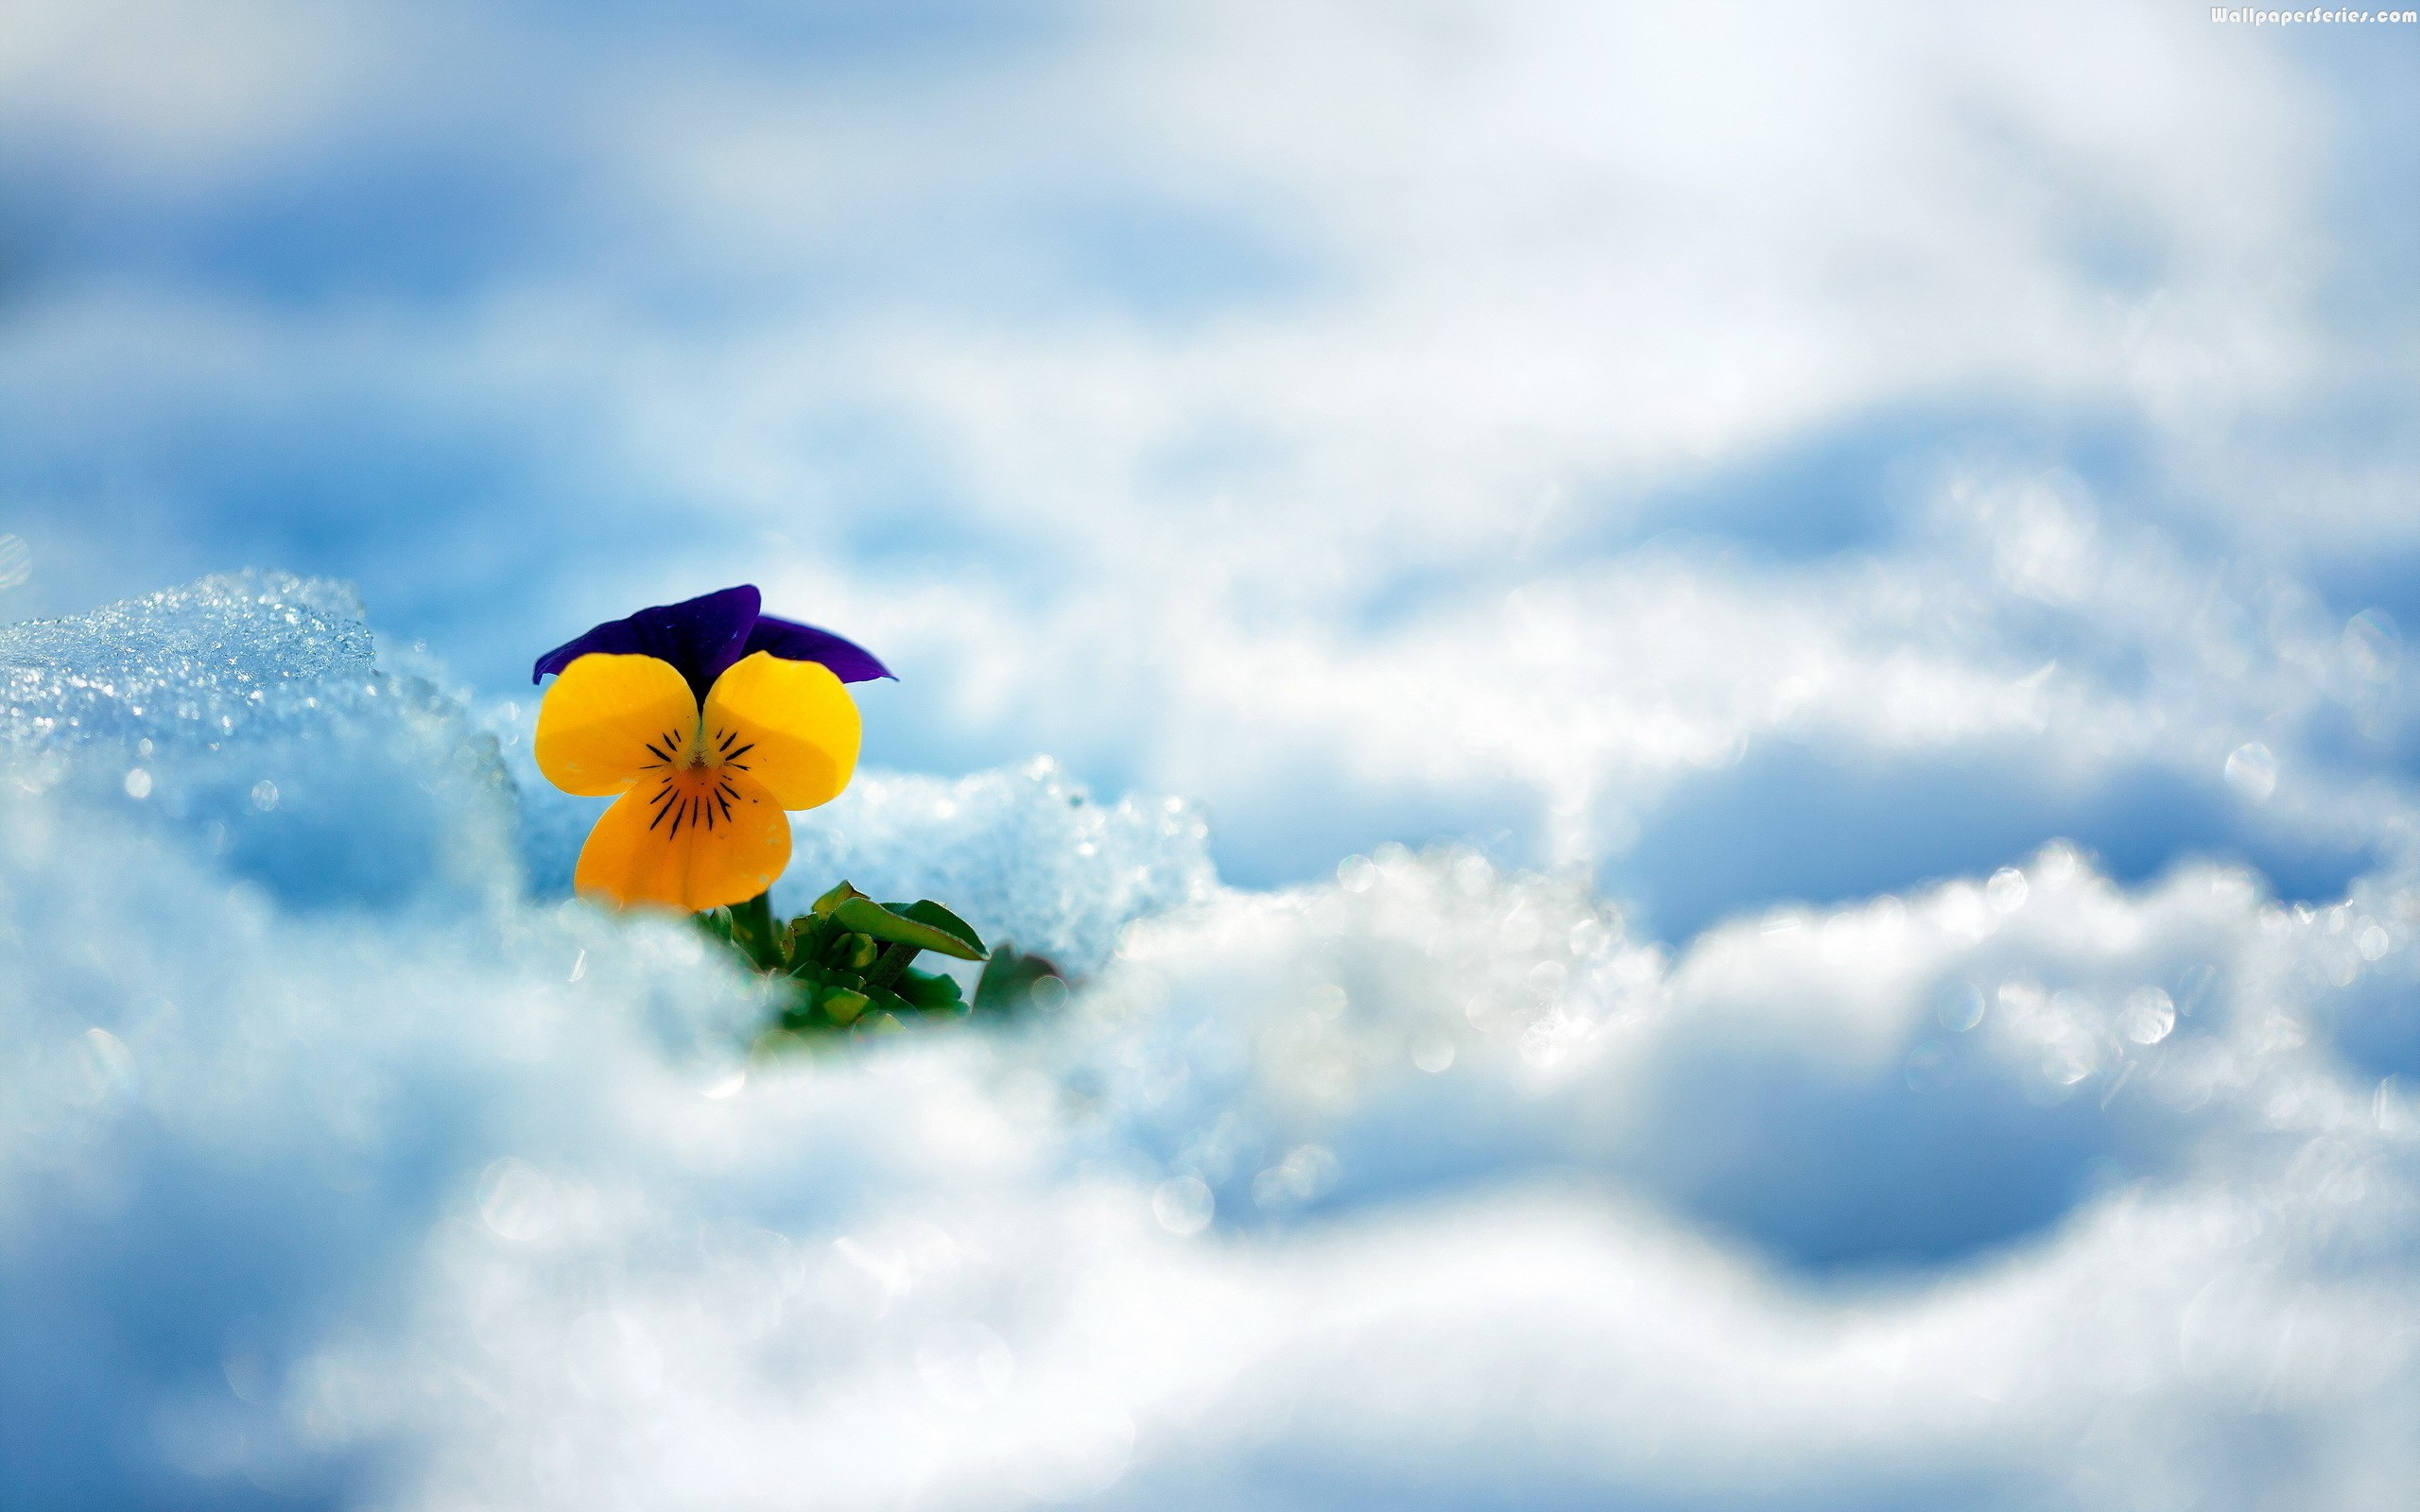 Beautiful-Yellow-Flower-In-Clouds-Winter-HD-Wallpaper